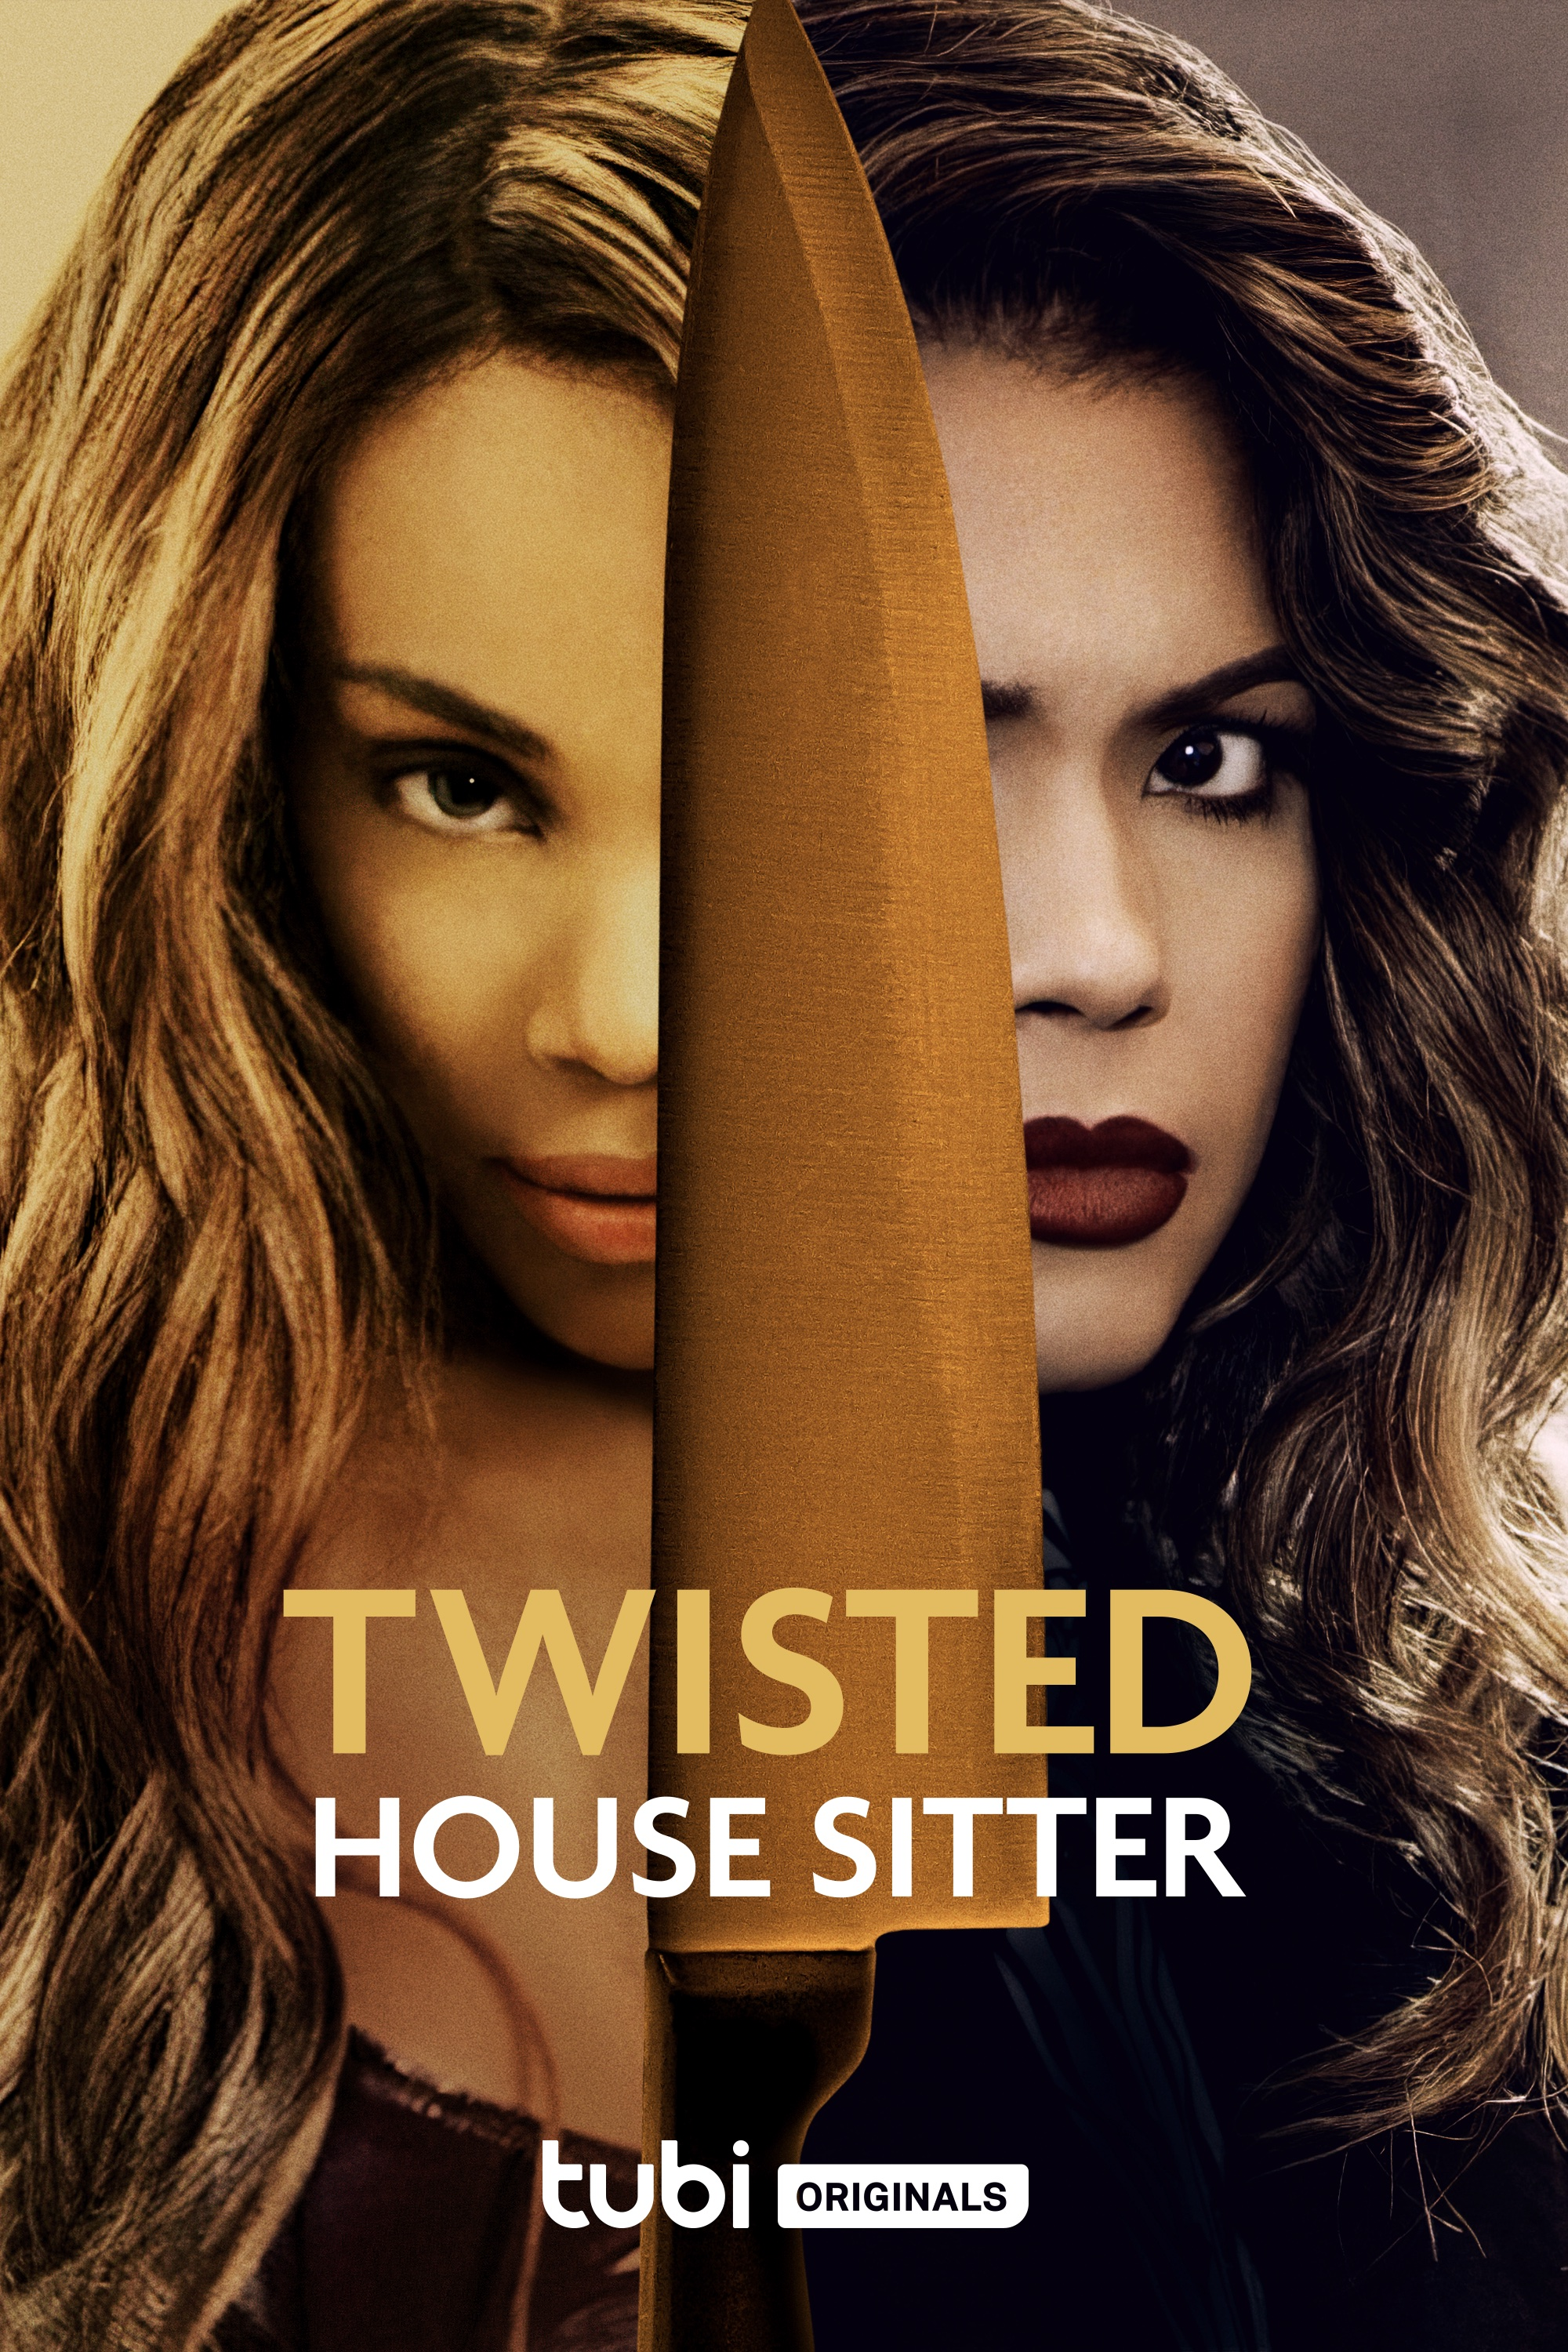 Download Twisted House Sitter (2021) Bengali Dubbed (Voice Over) WEBRip 720p [Full Movie] 1XBET Full Movie Online On 1xcinema.com